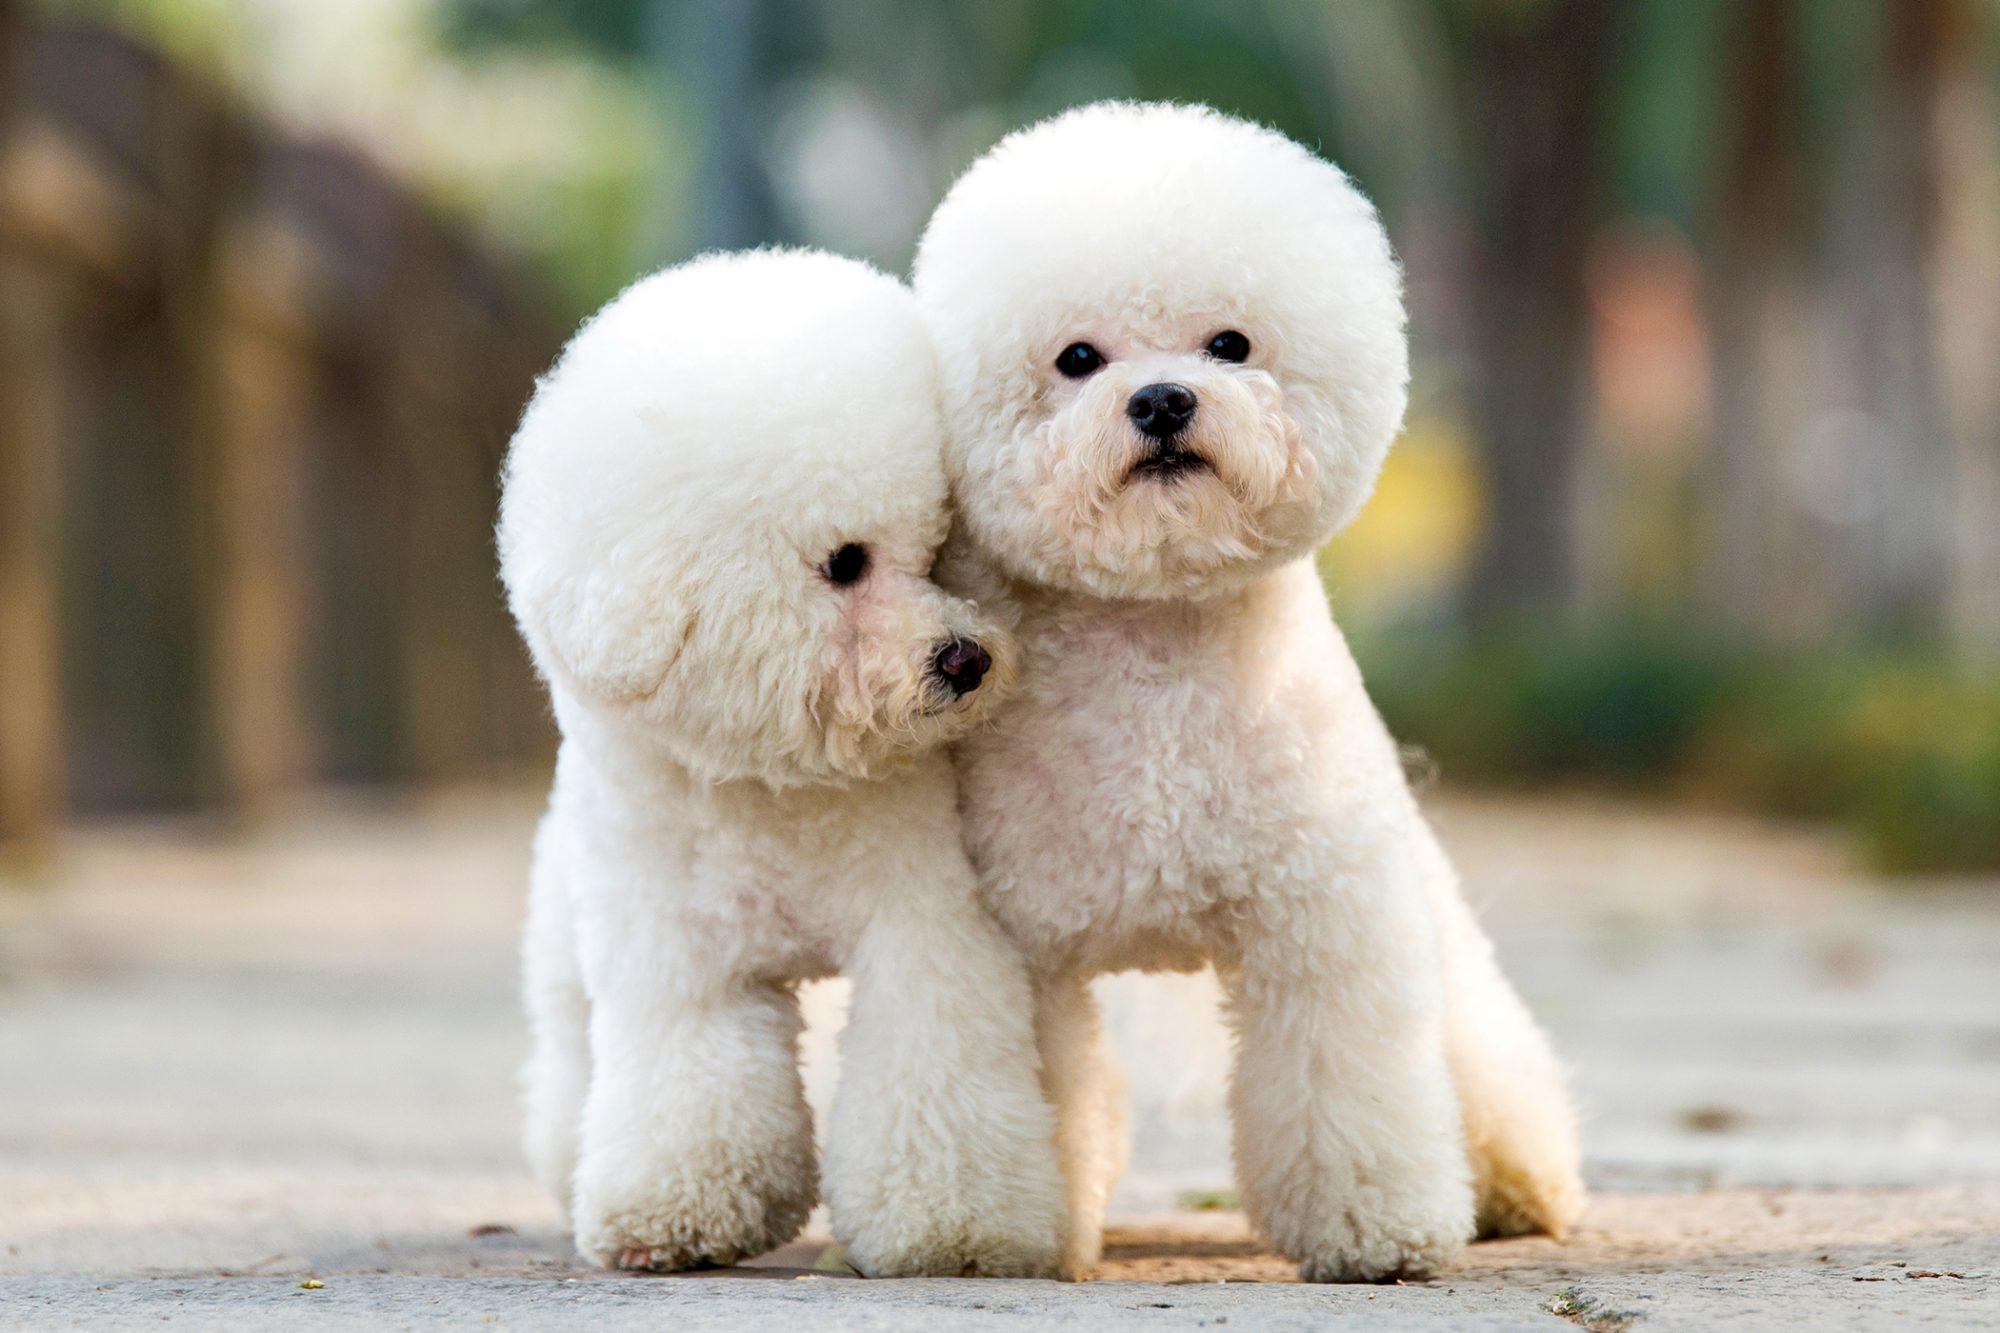 two white toy poodles with teddy bear haircuts standing next to each other outside